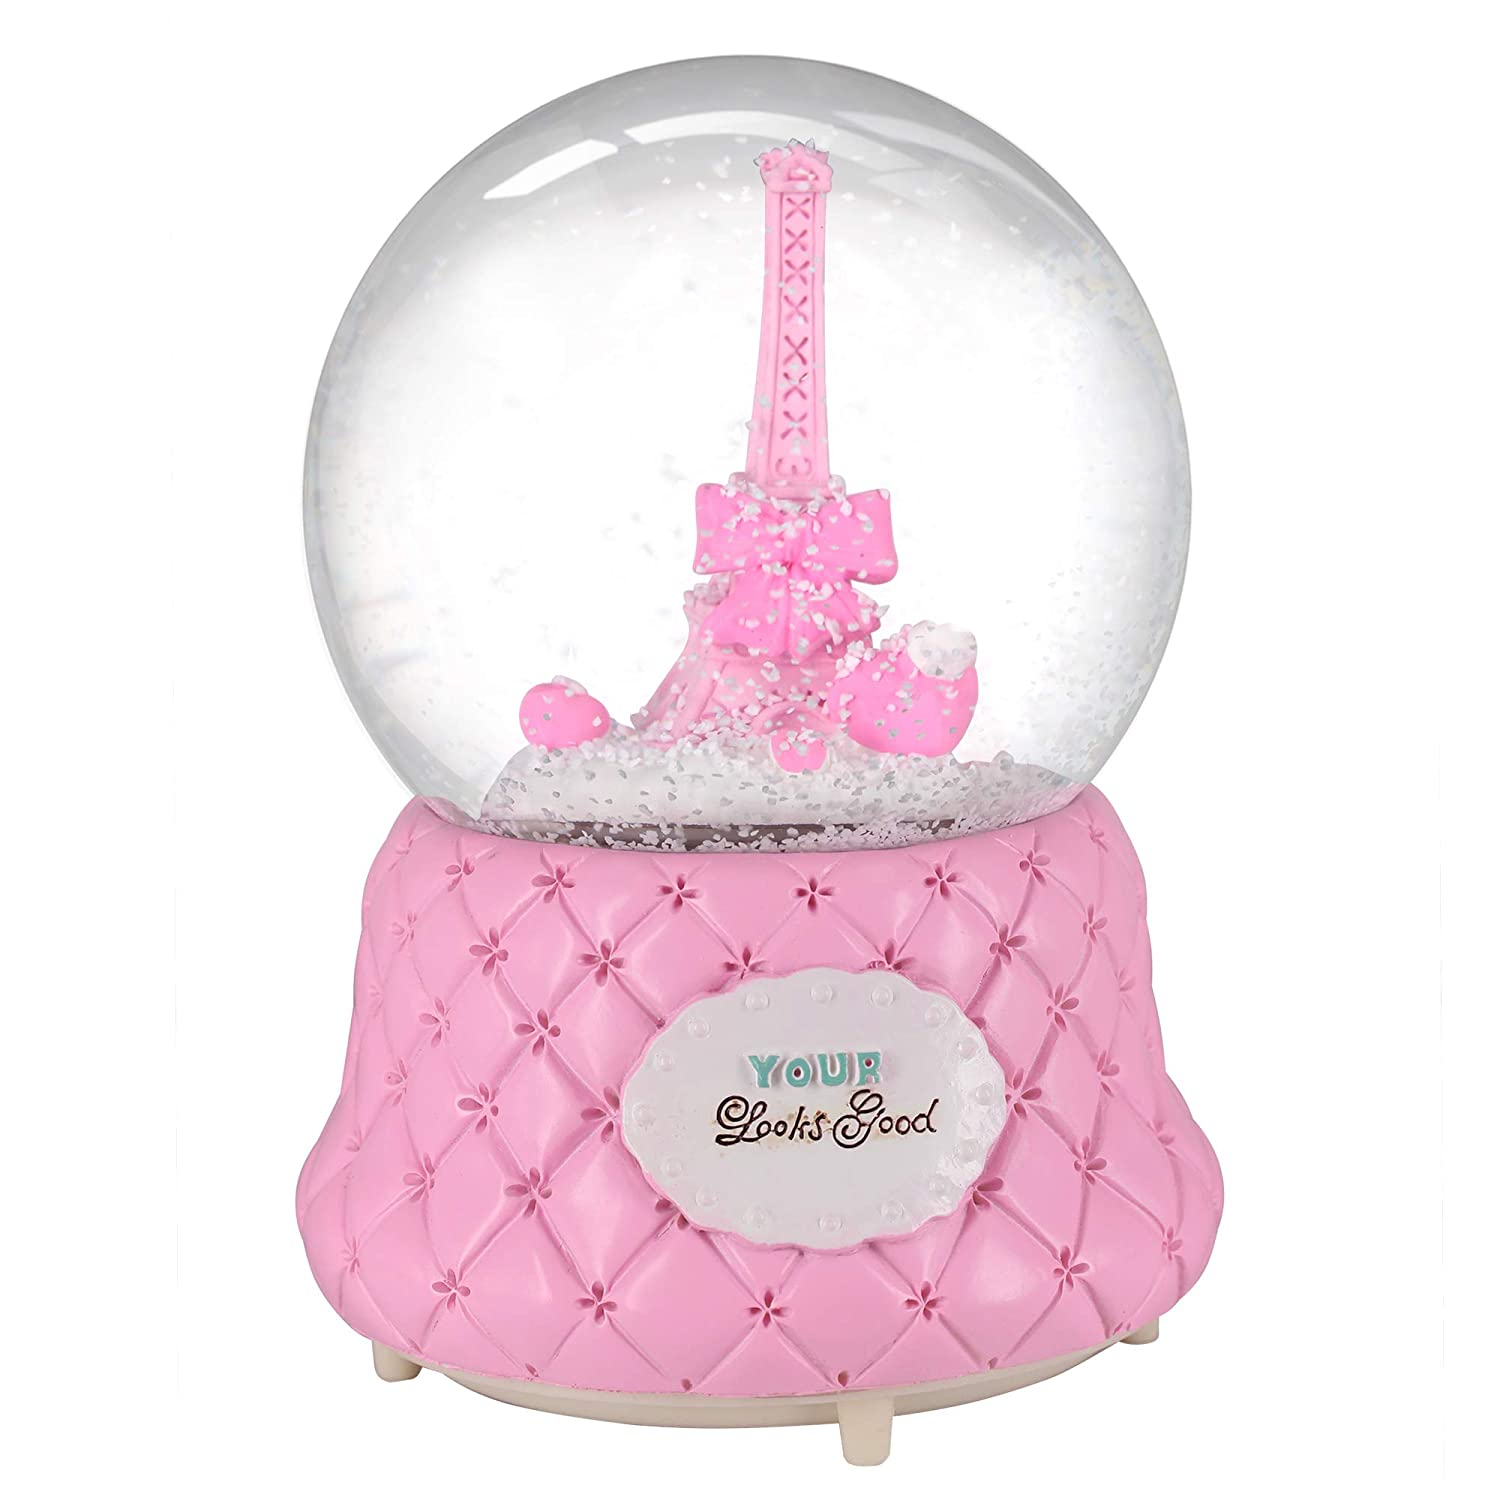 Romantic Eiffel Tower Snow Globe Souvenir Nice Pies Pink Paris Snow Globe Exclusive with Automatic Snowfall and Colorful Lights 100mm Glass Globes